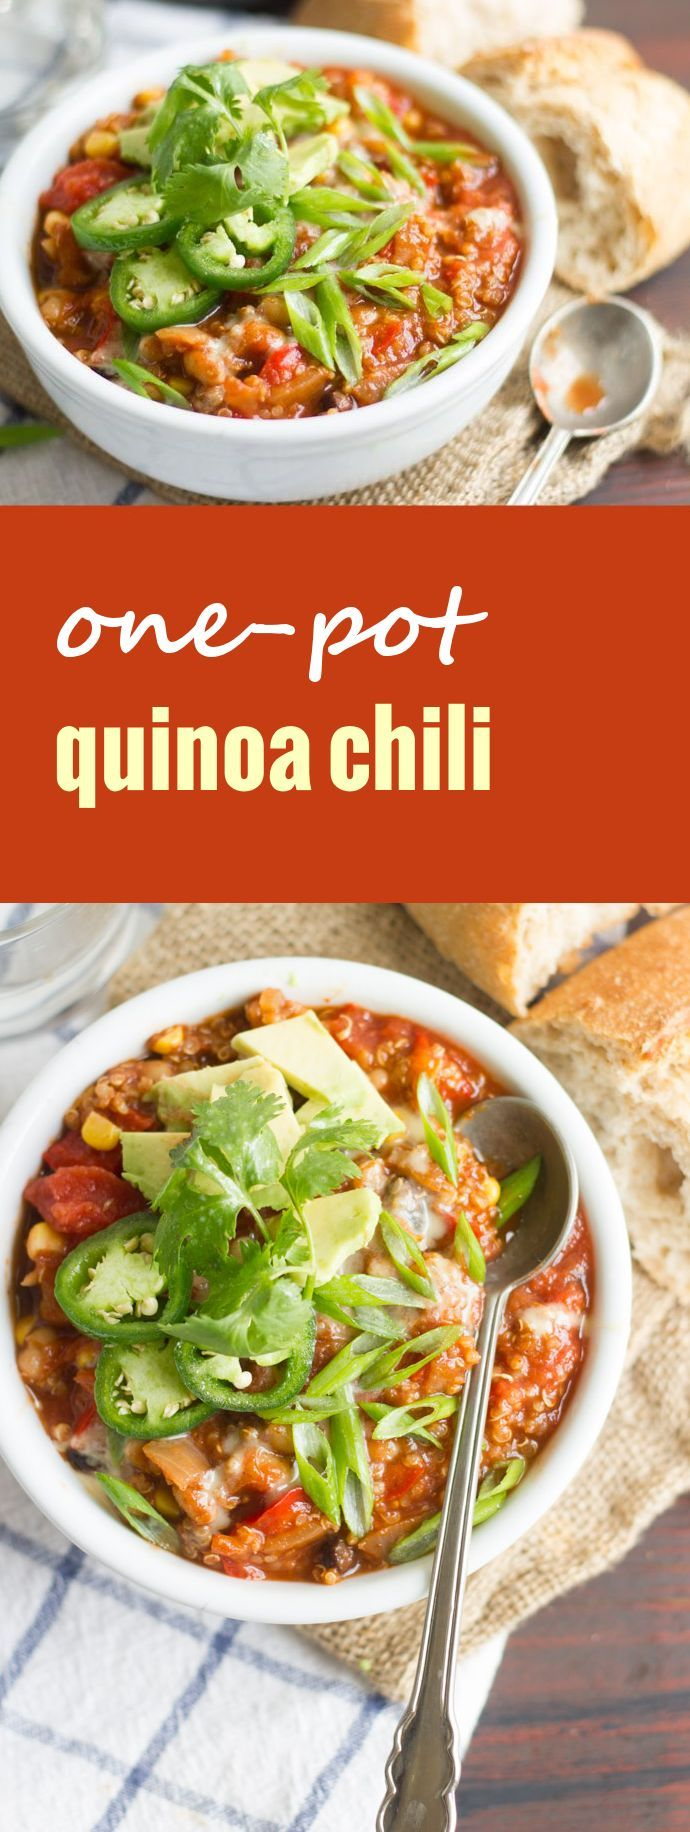 This hearty vegan one-pot quinoa chili features summer corn and beans simmered up in spicy tomato sauce, served up with your favorite chili toppings.